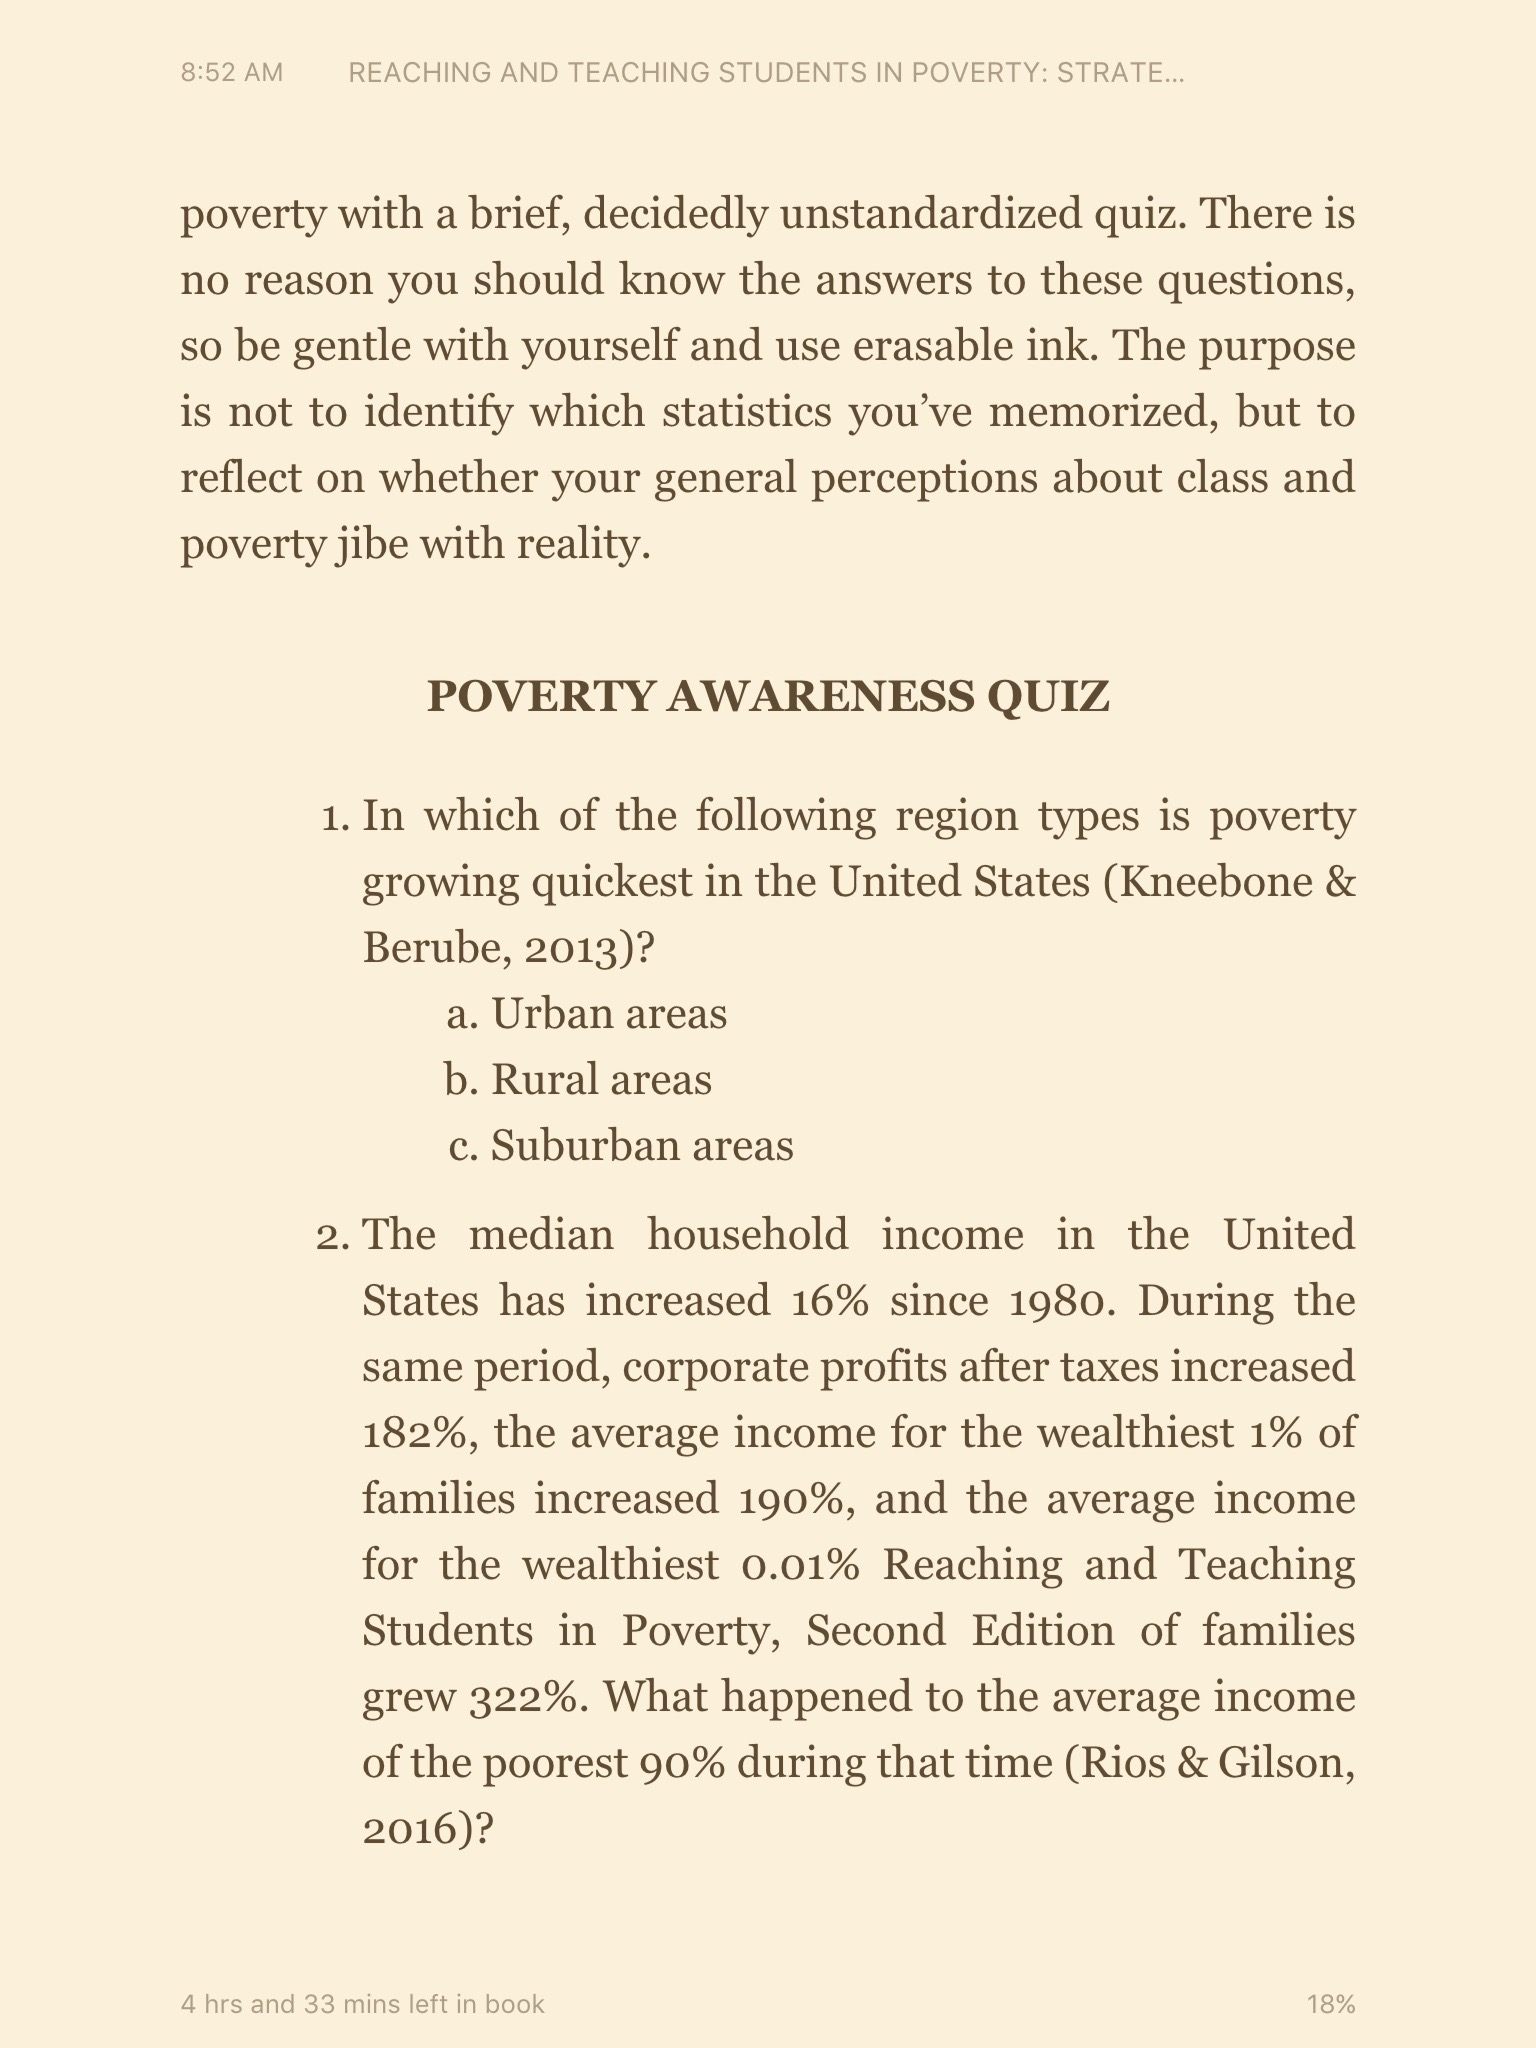 Photo from the book: Poverty Awareness Quiz